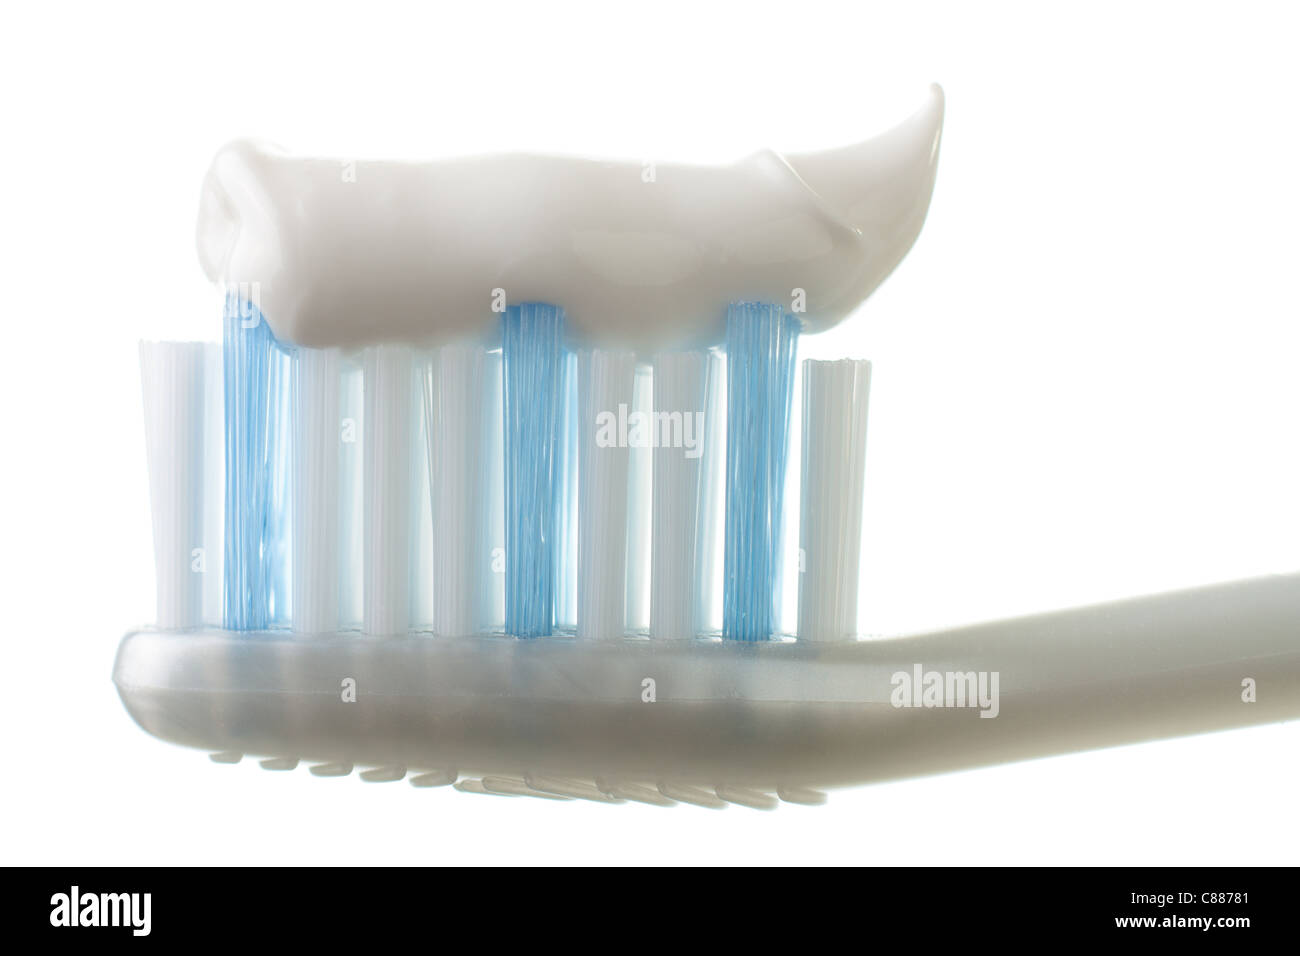 Toothbrush with Toothpaste Isolated on White - Stock Image